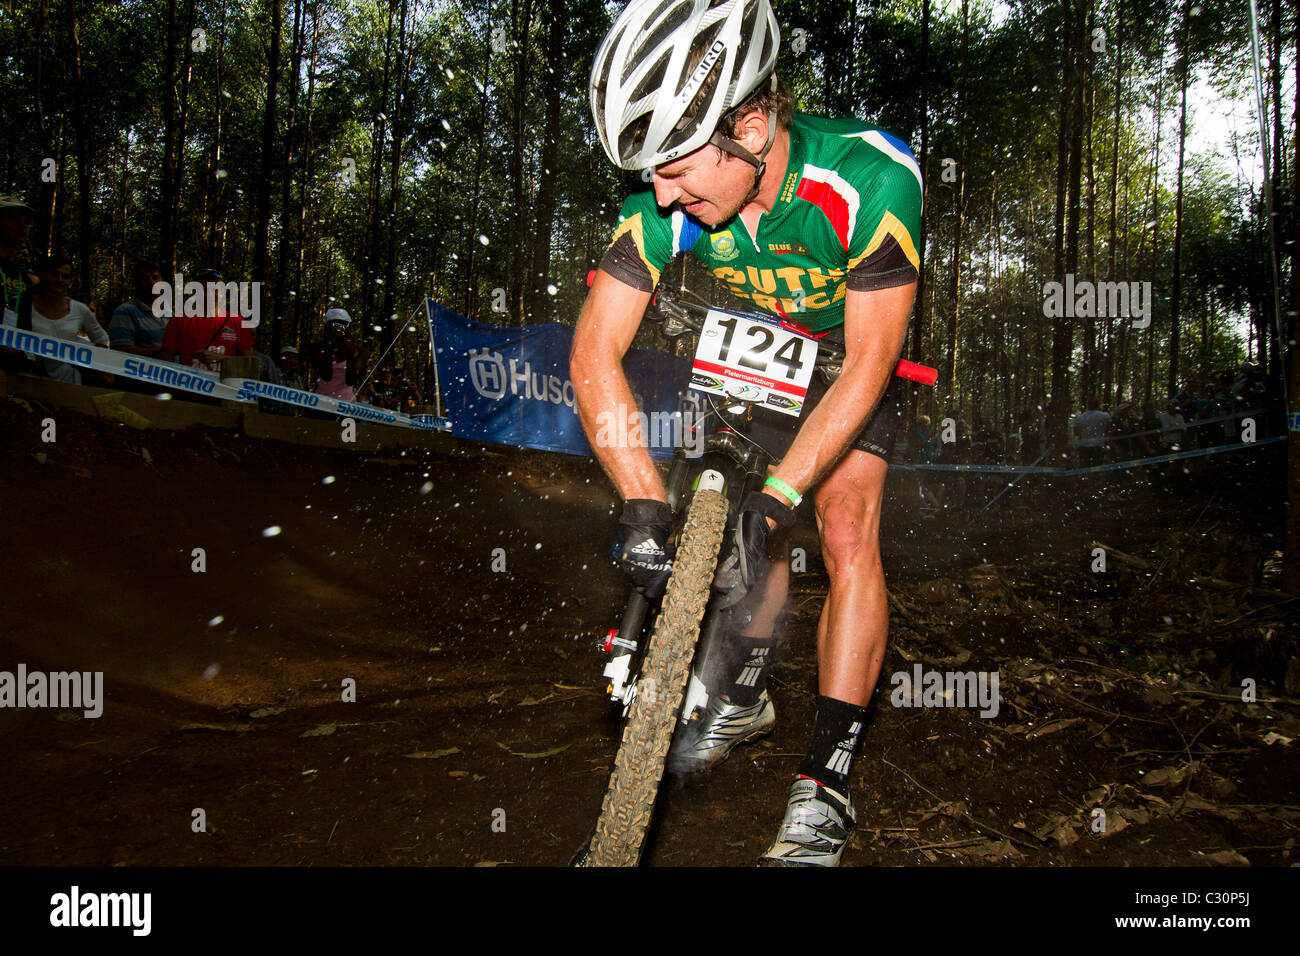 UCI MTB World Cup 2011 Round 1 Rider inflating tyre - Stock Image